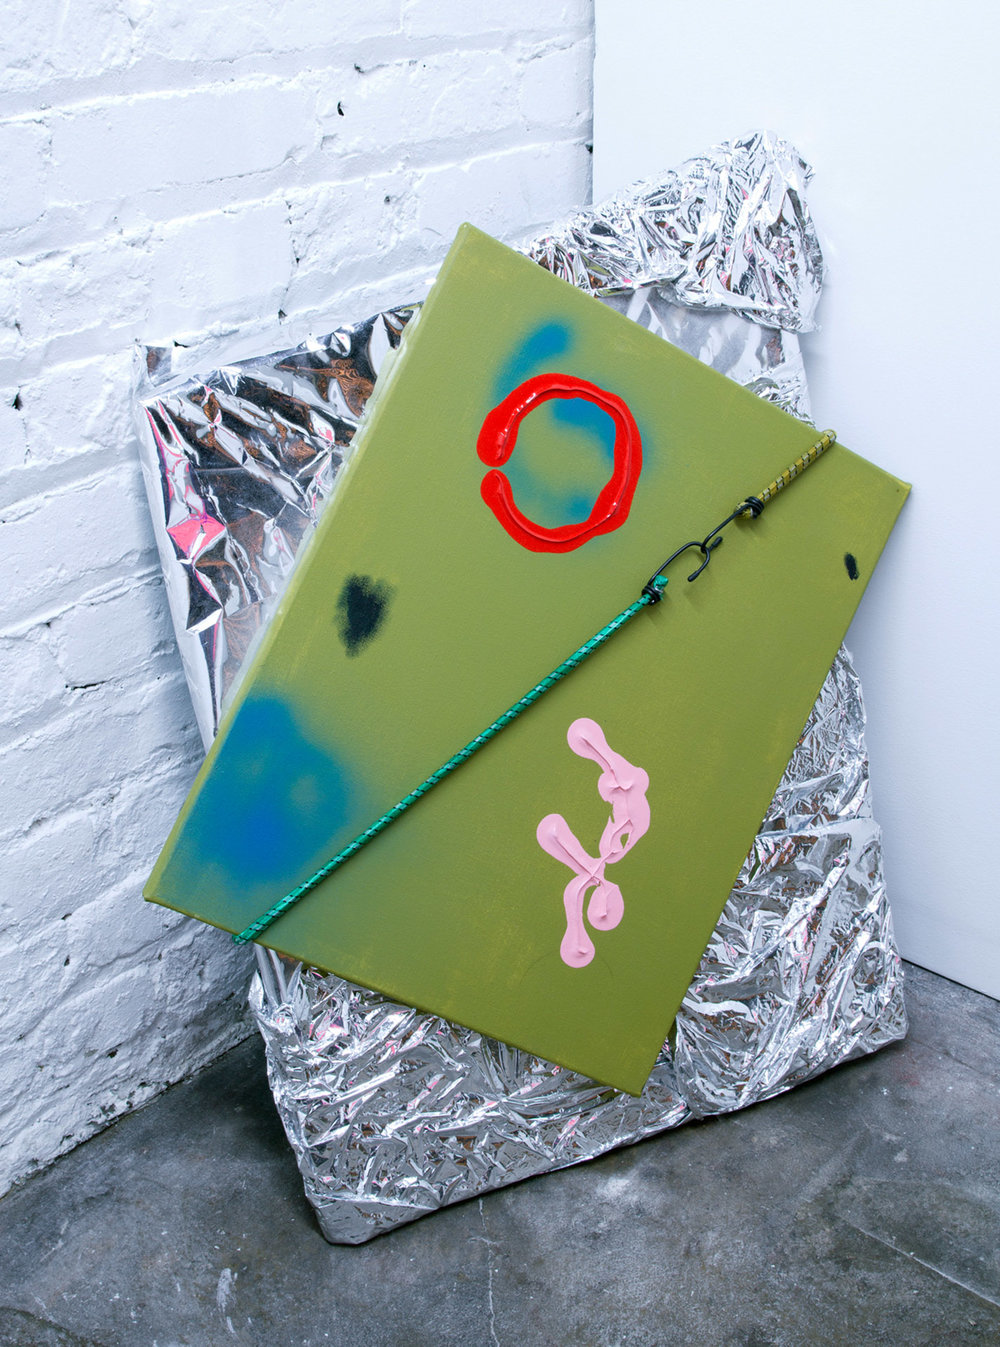 Green Painting with Circle , 2016, acrylic and spray paint on canvas, foam, reflective material, bungee cords Installed at Chamber, image courtesy of  Kyle Seis